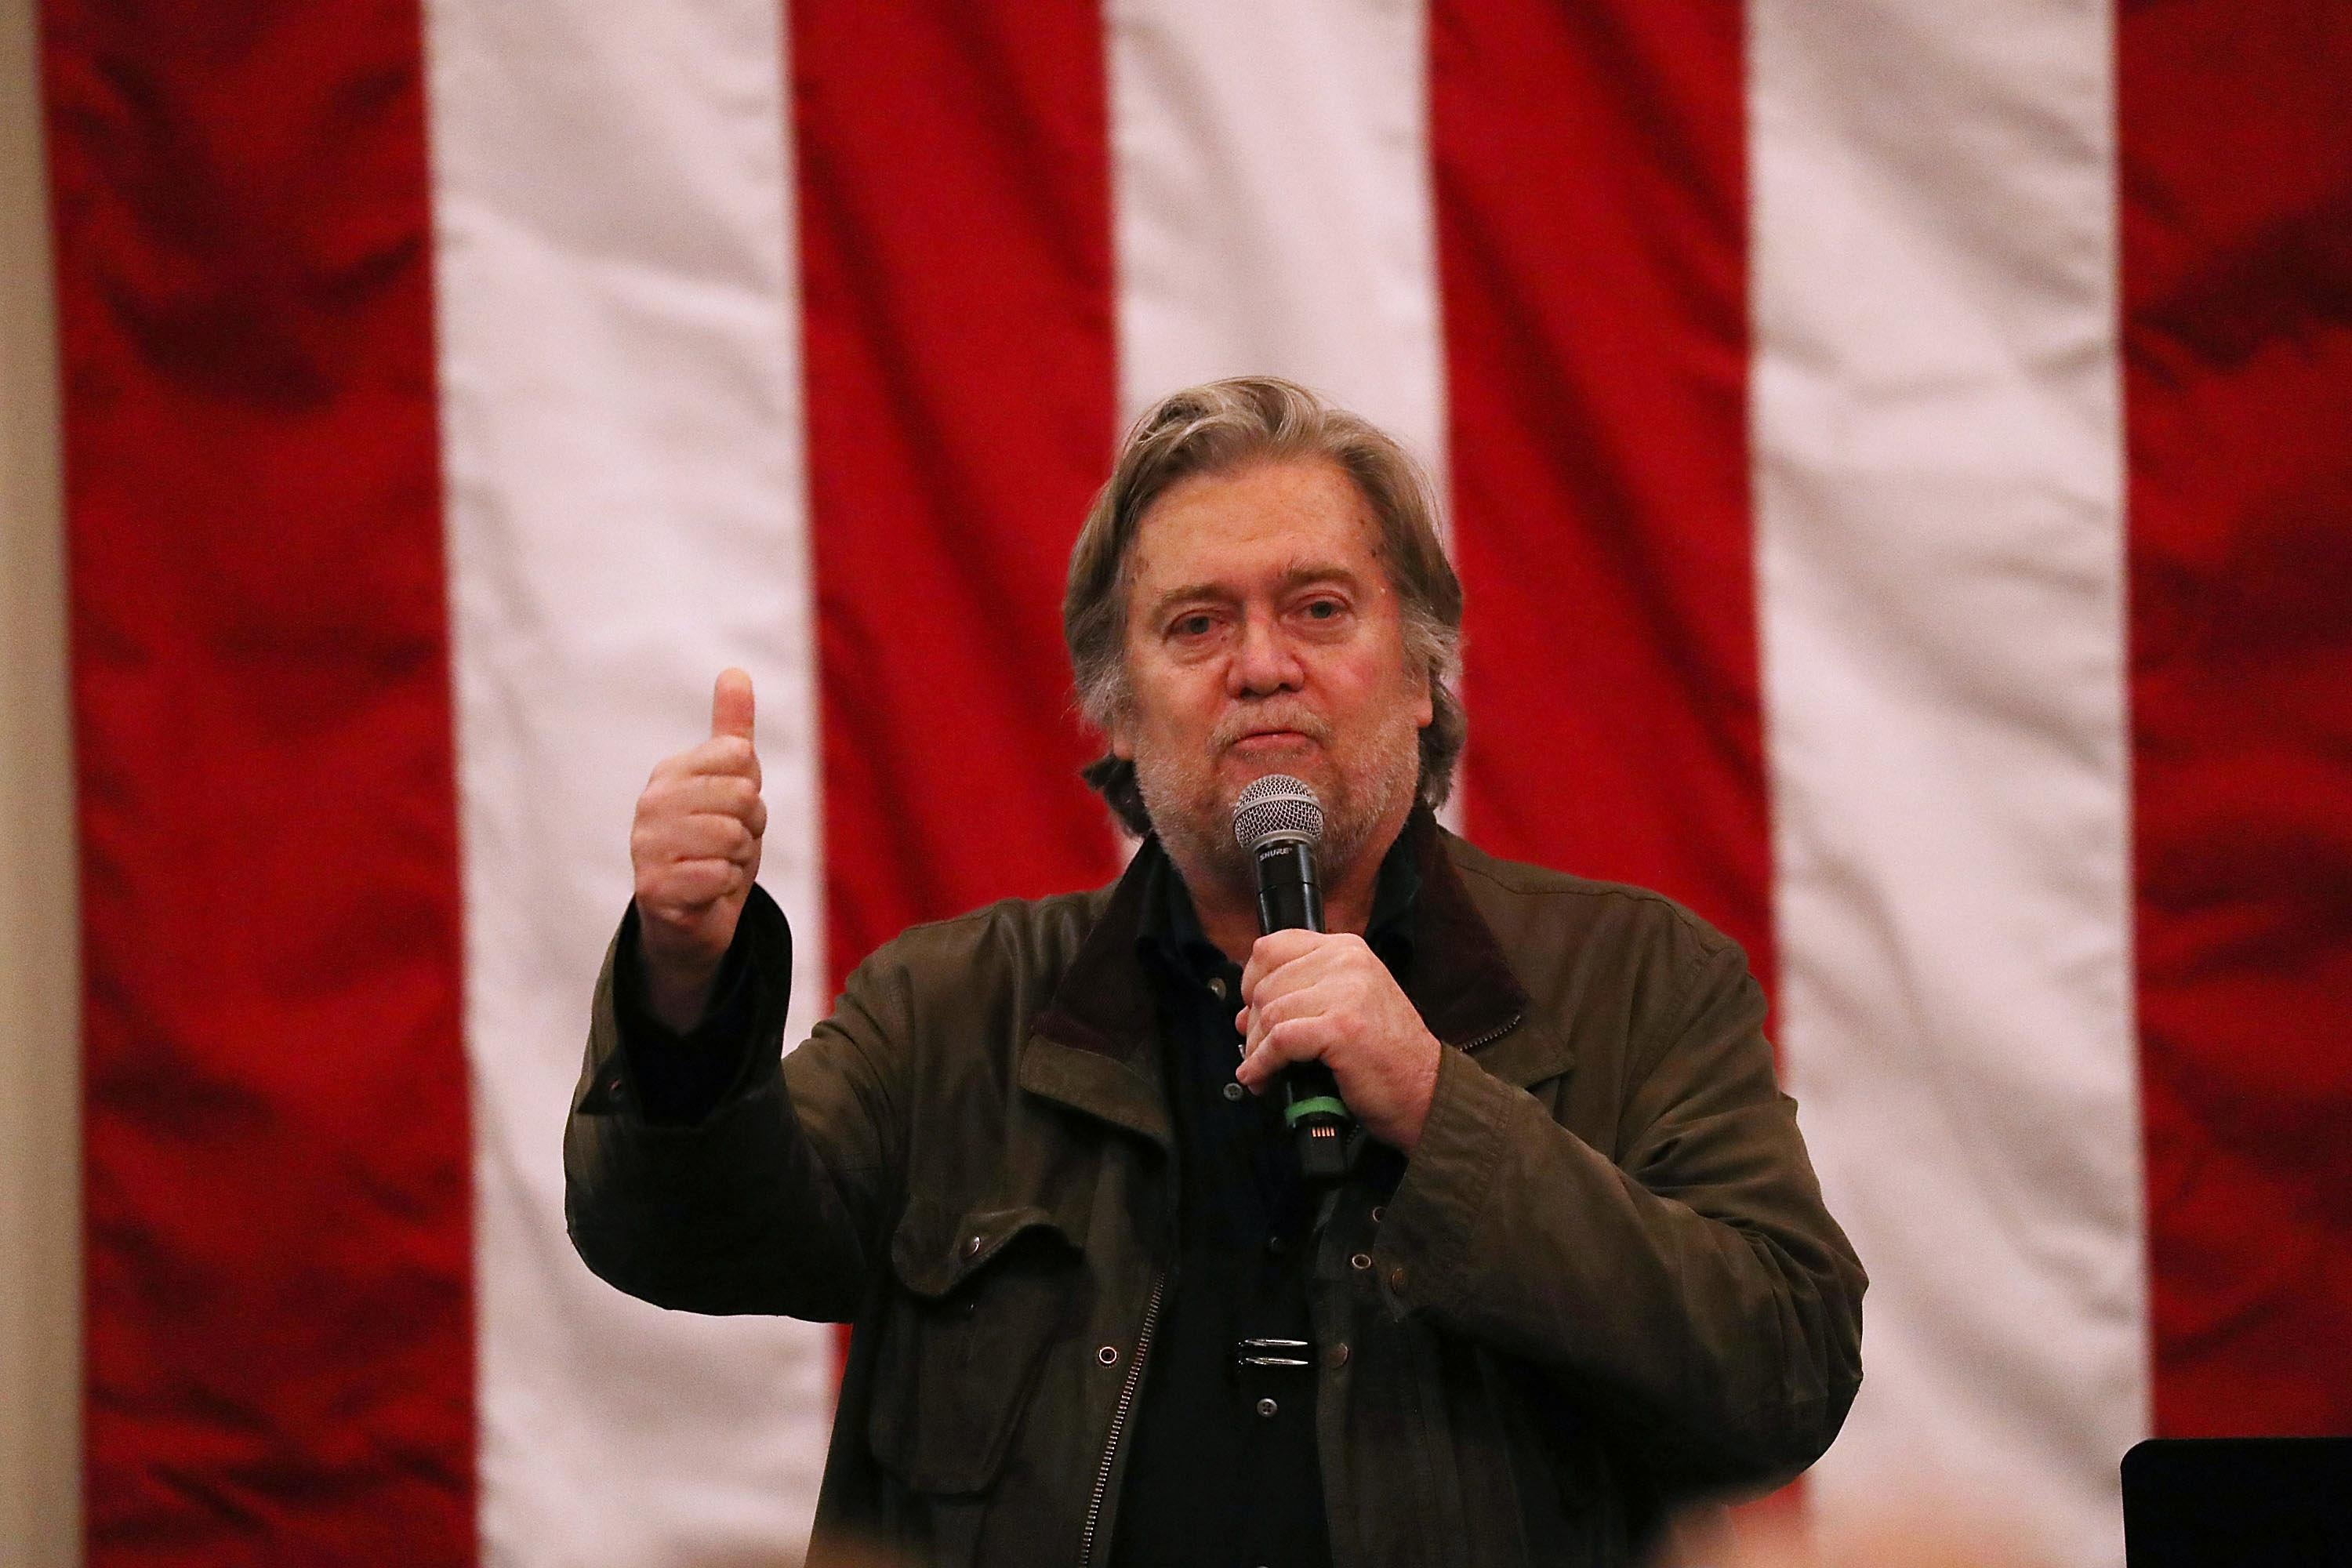 Steve Bannon speaks before the arrival of Republican Senatorial candidate Roy Moore during a campaign event at Jordan's Activity Barn on December 11, 2017 in Midland City, Alabama.